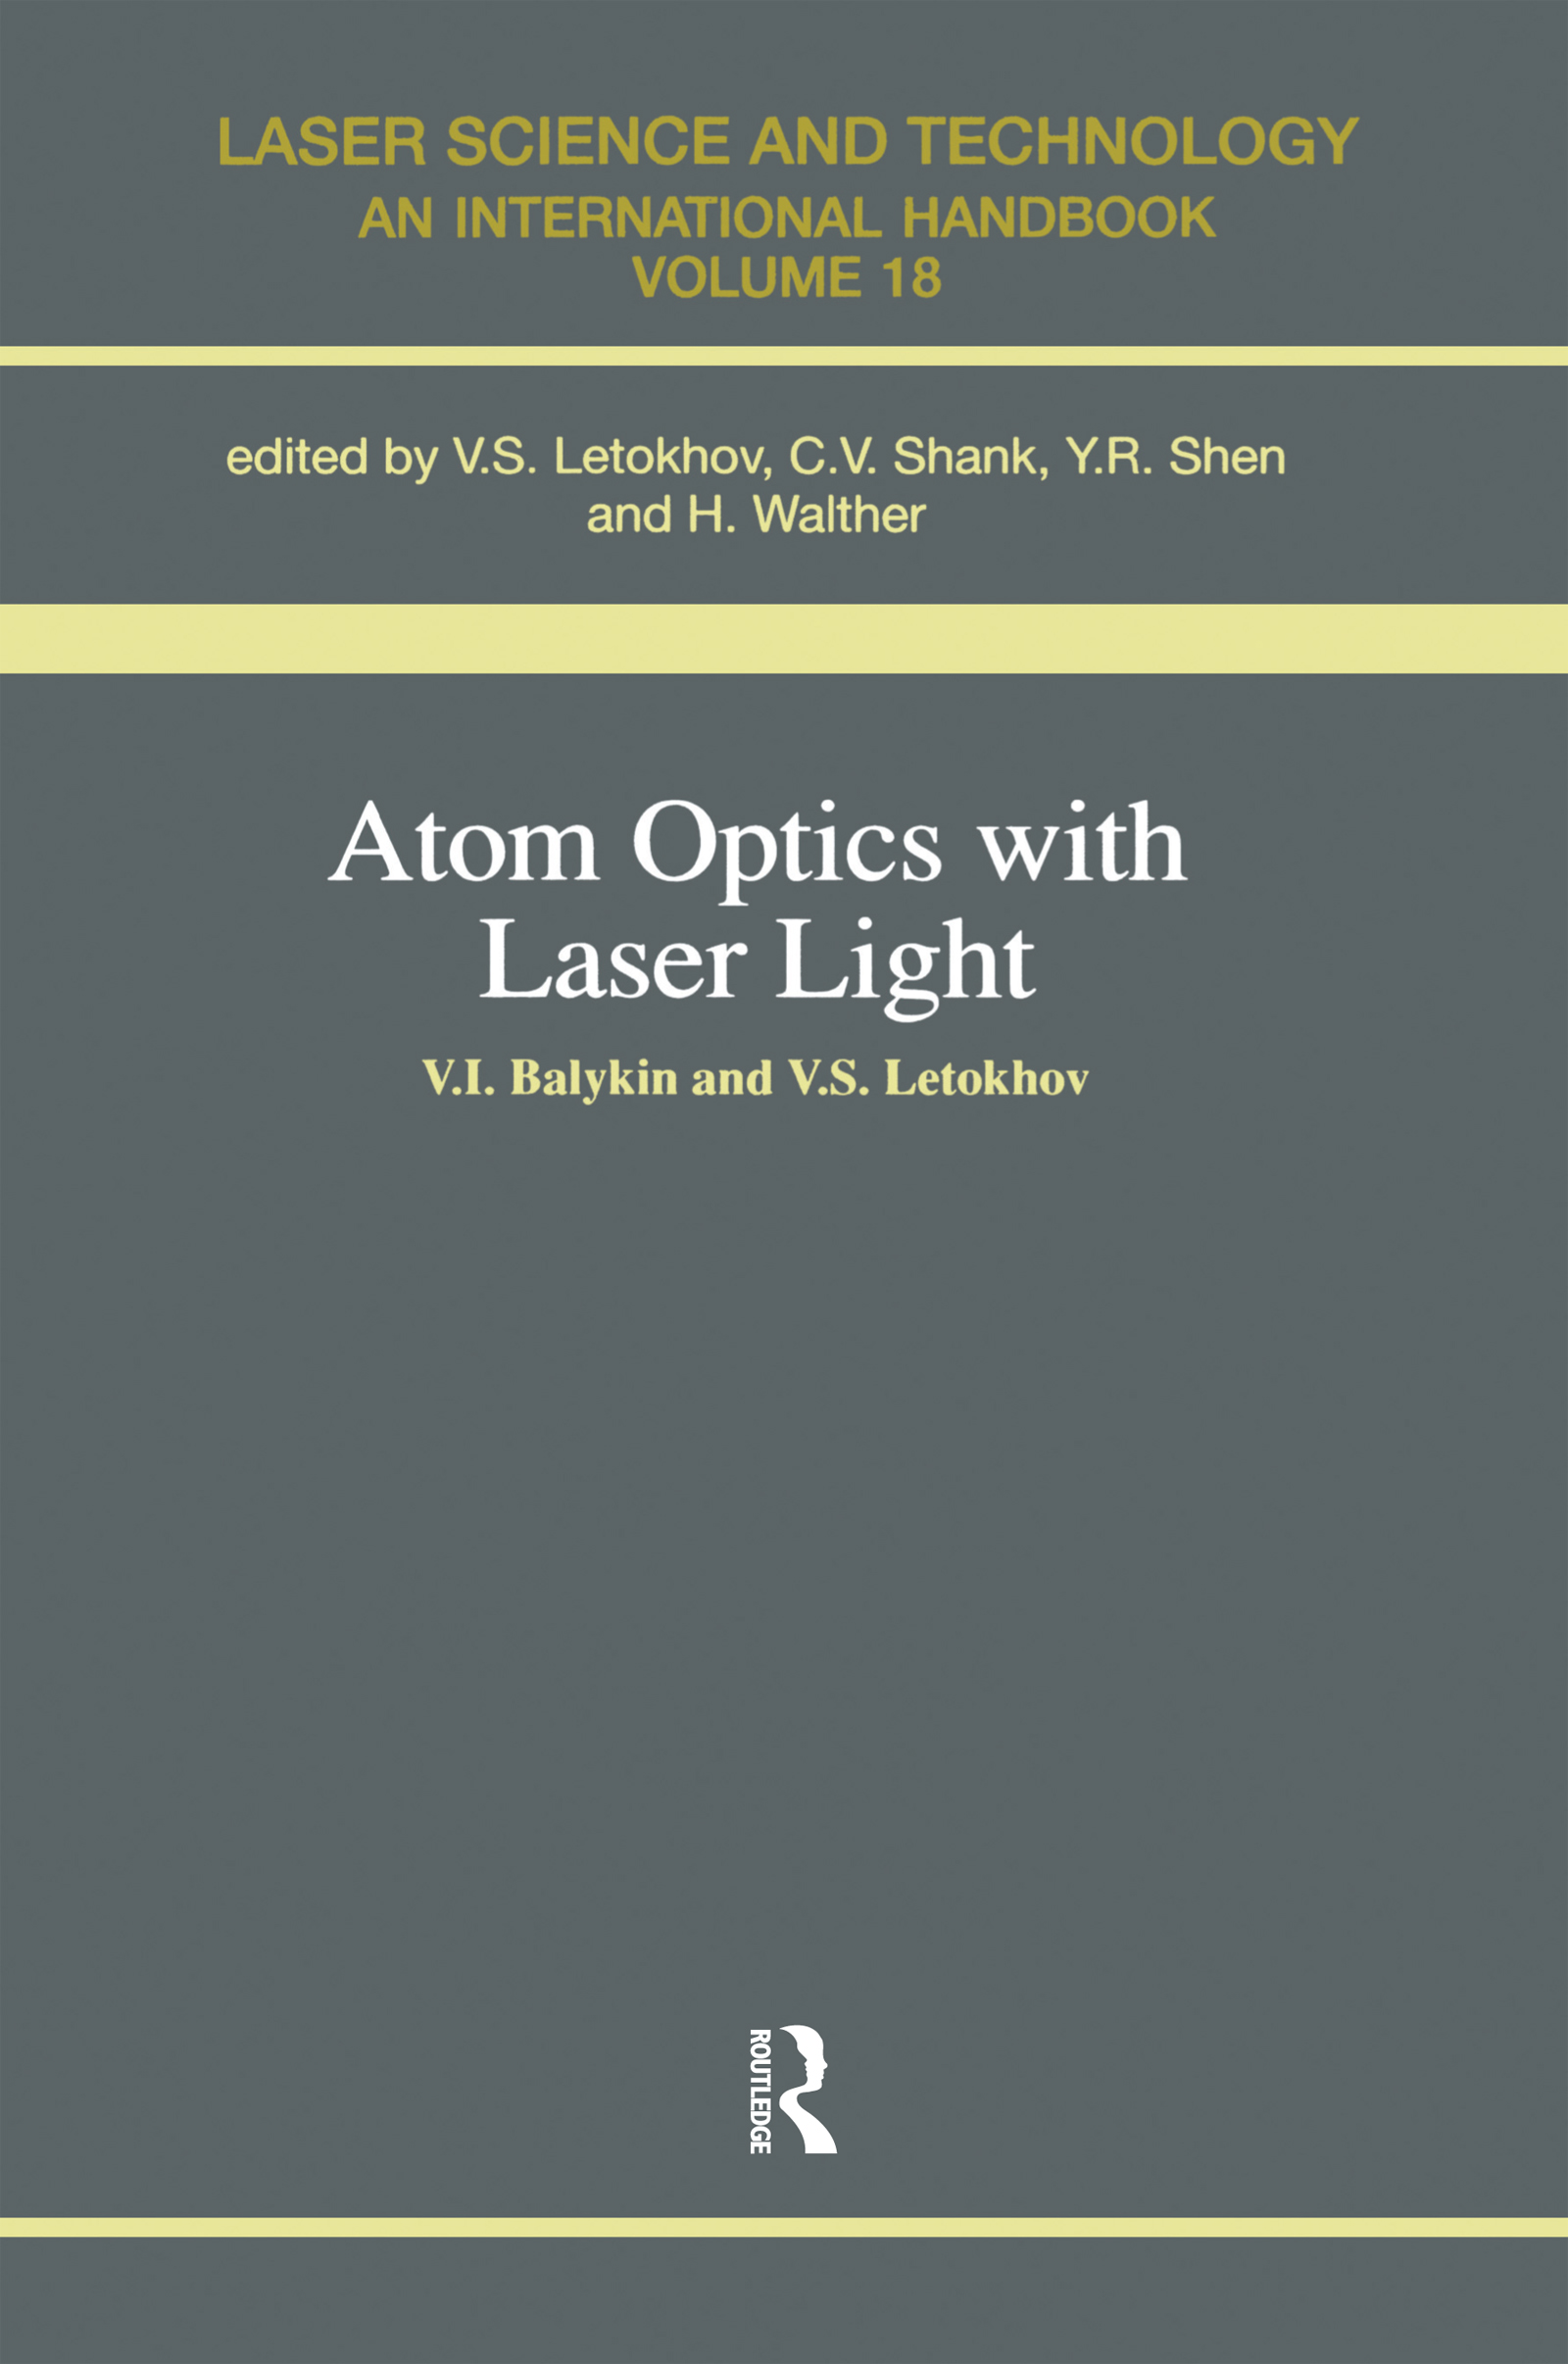 Atom Optics with Laser Light: 1st Edition (Paperback) book cover